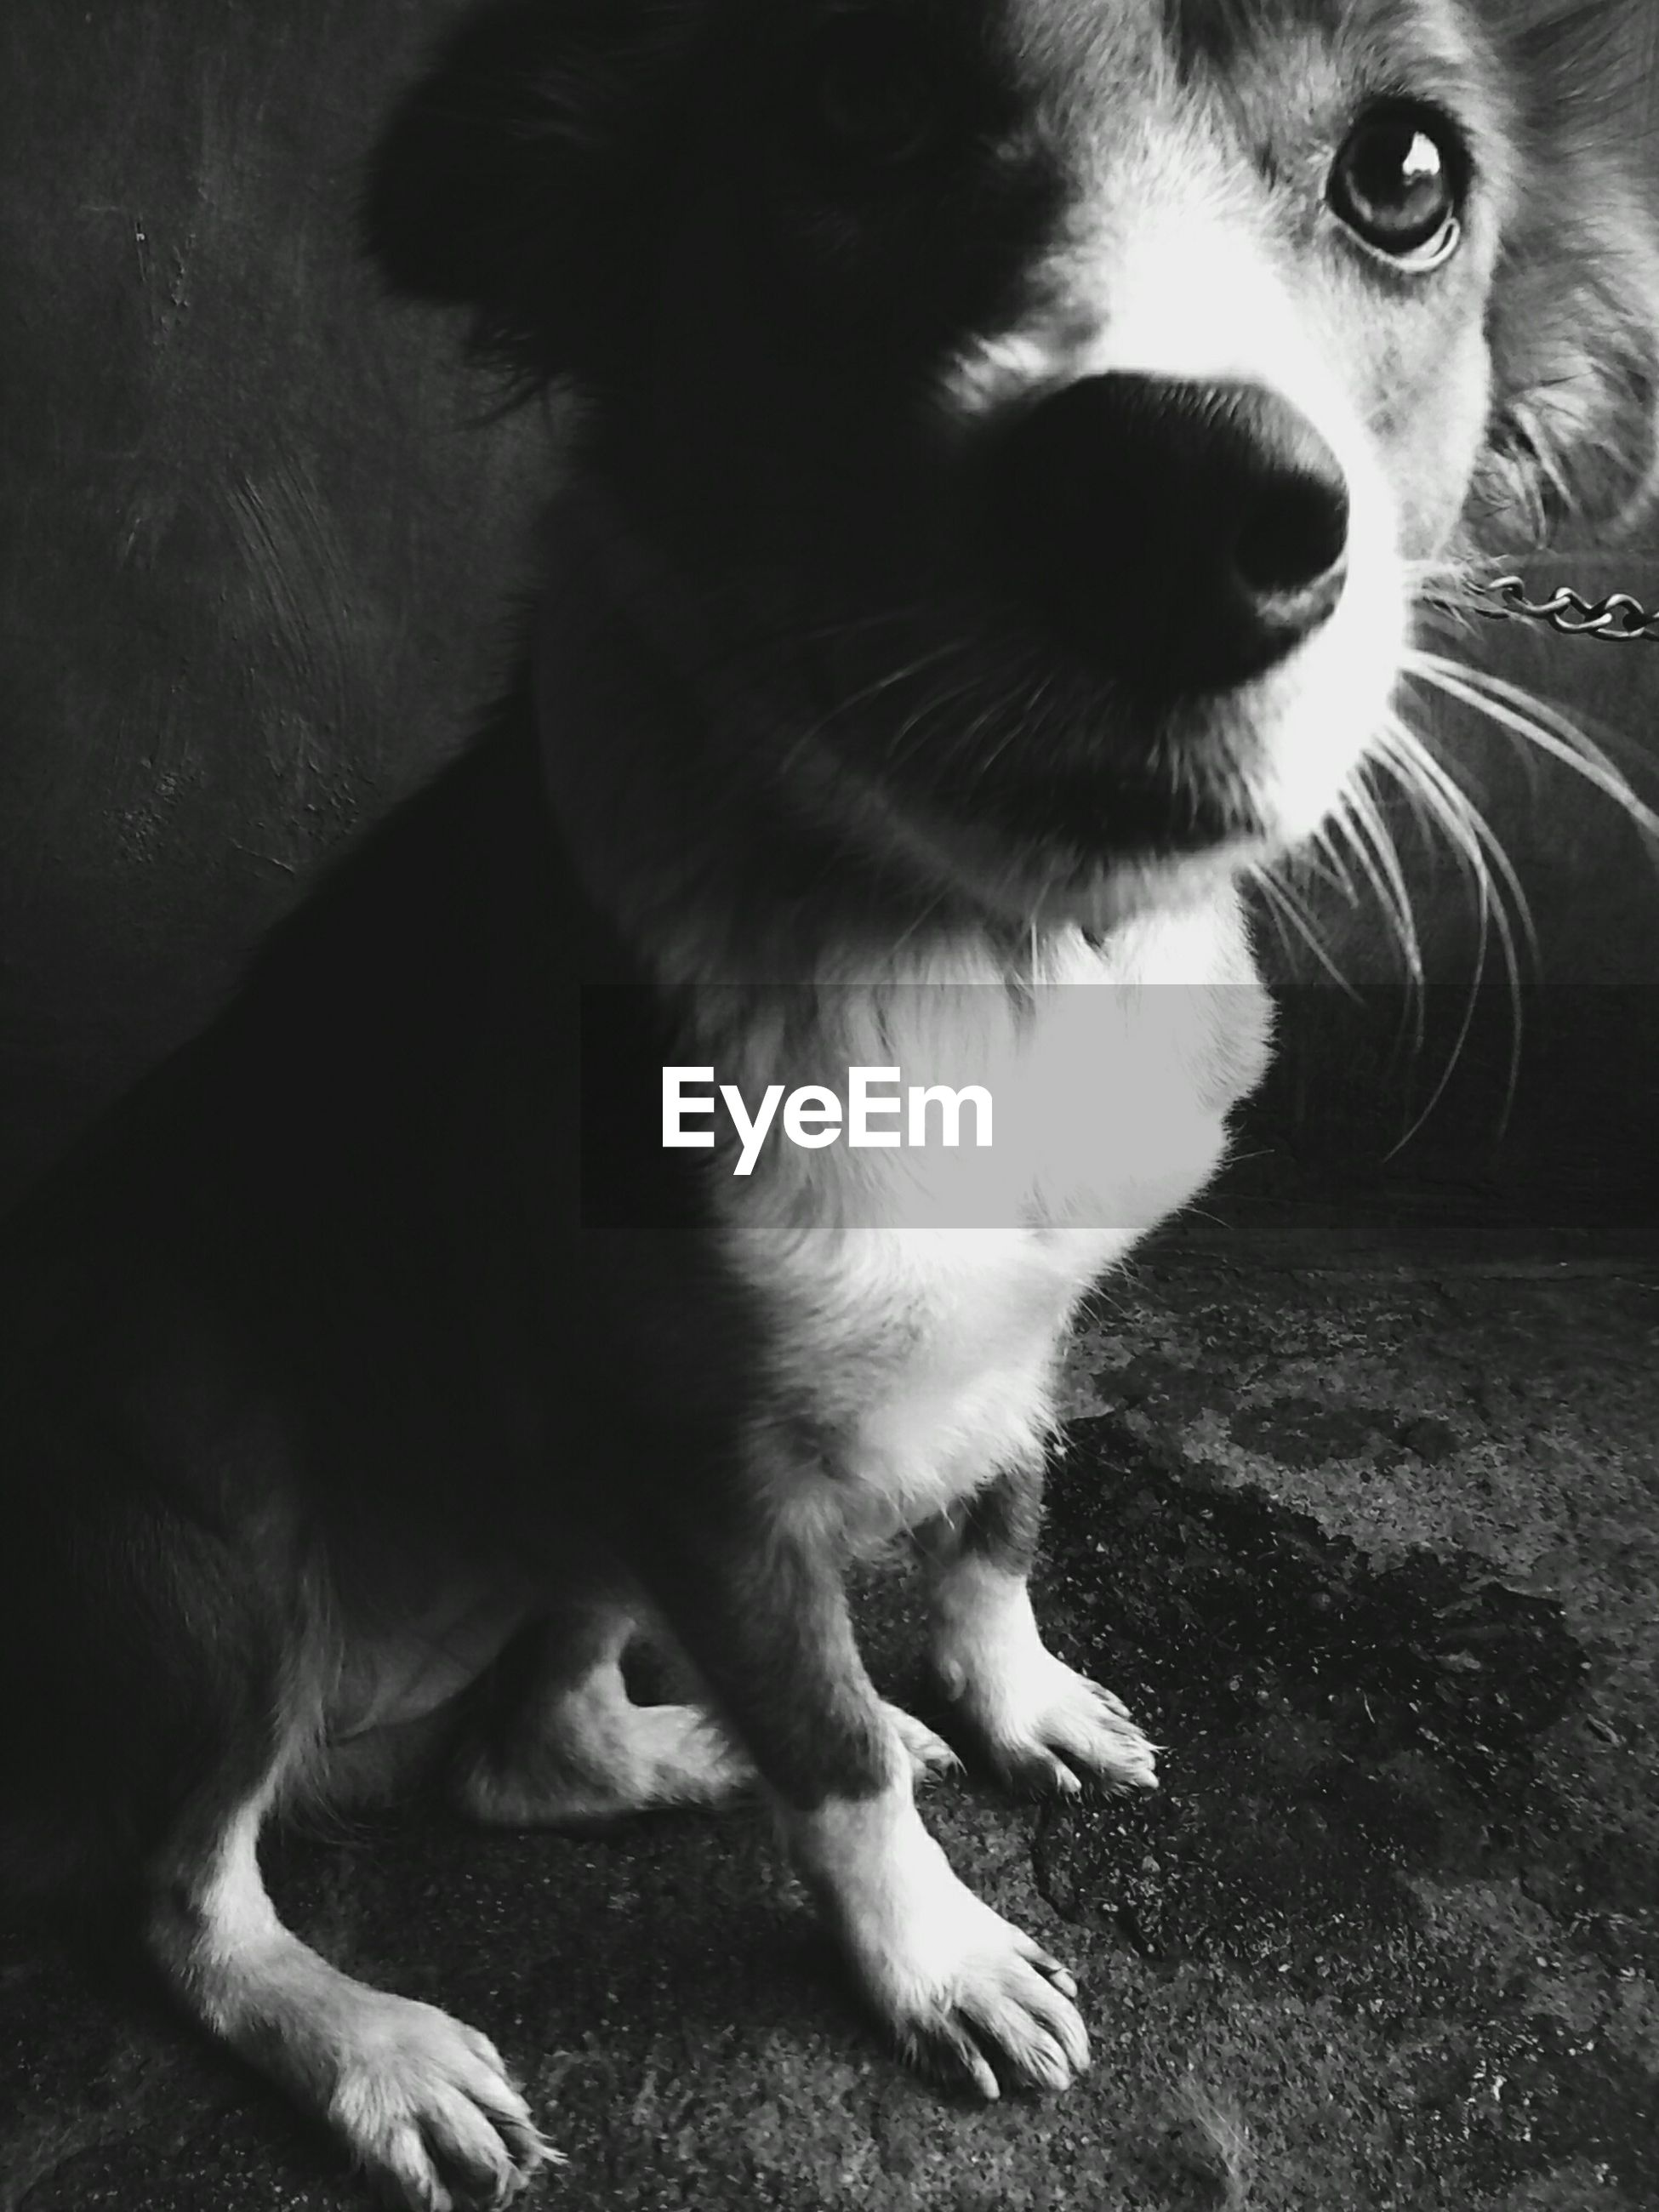 animal themes, domestic animals, pets, one animal, looking away, feline, cat, domestic cat, mammal, close-up, whisker, animal head, curiosity, zoology, alertness, dog, carnivora, front view, animal nose, animal, whiskers, animal eye, snout, pampered pets, loyalty, animal hair